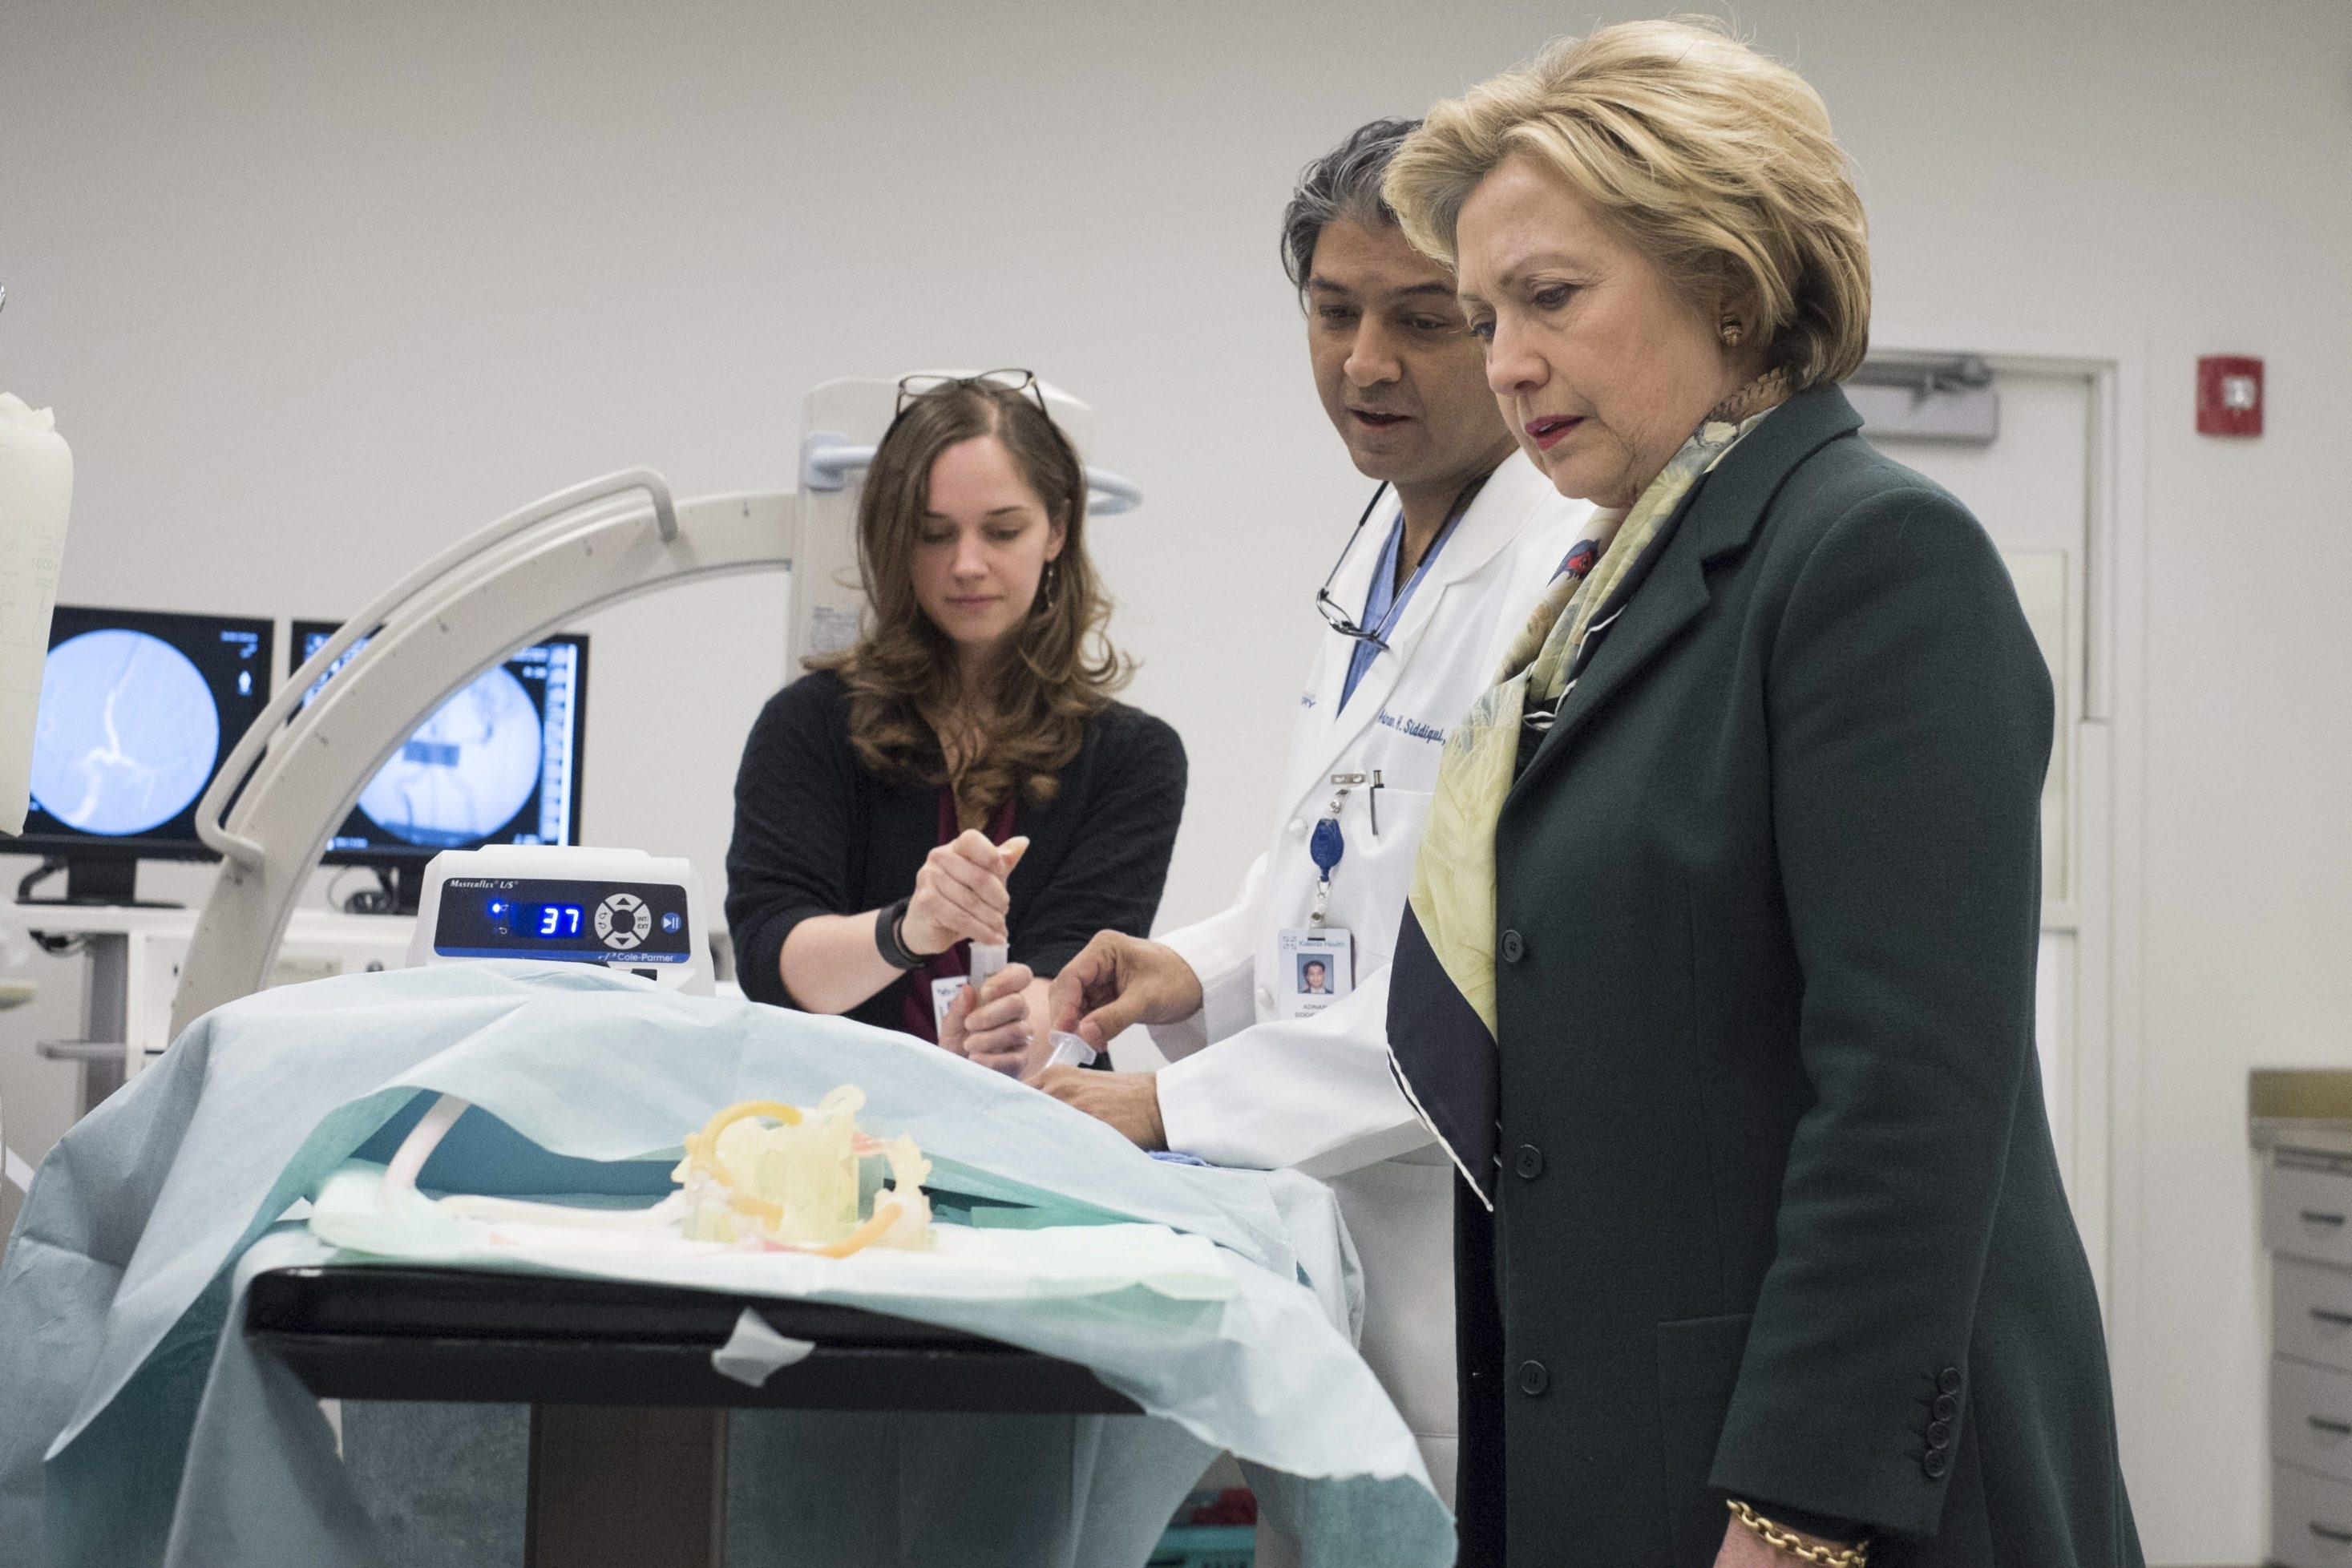 Dr. Adnan Siddiqui, chief medical officer of the Jacobs Institute, gives a demonstration of technology to presidential candidate Hillary Clinton during a tour of a training lab during a campaign stop in Buffalo on Friday.  (Derek Gee/Buffalo News)